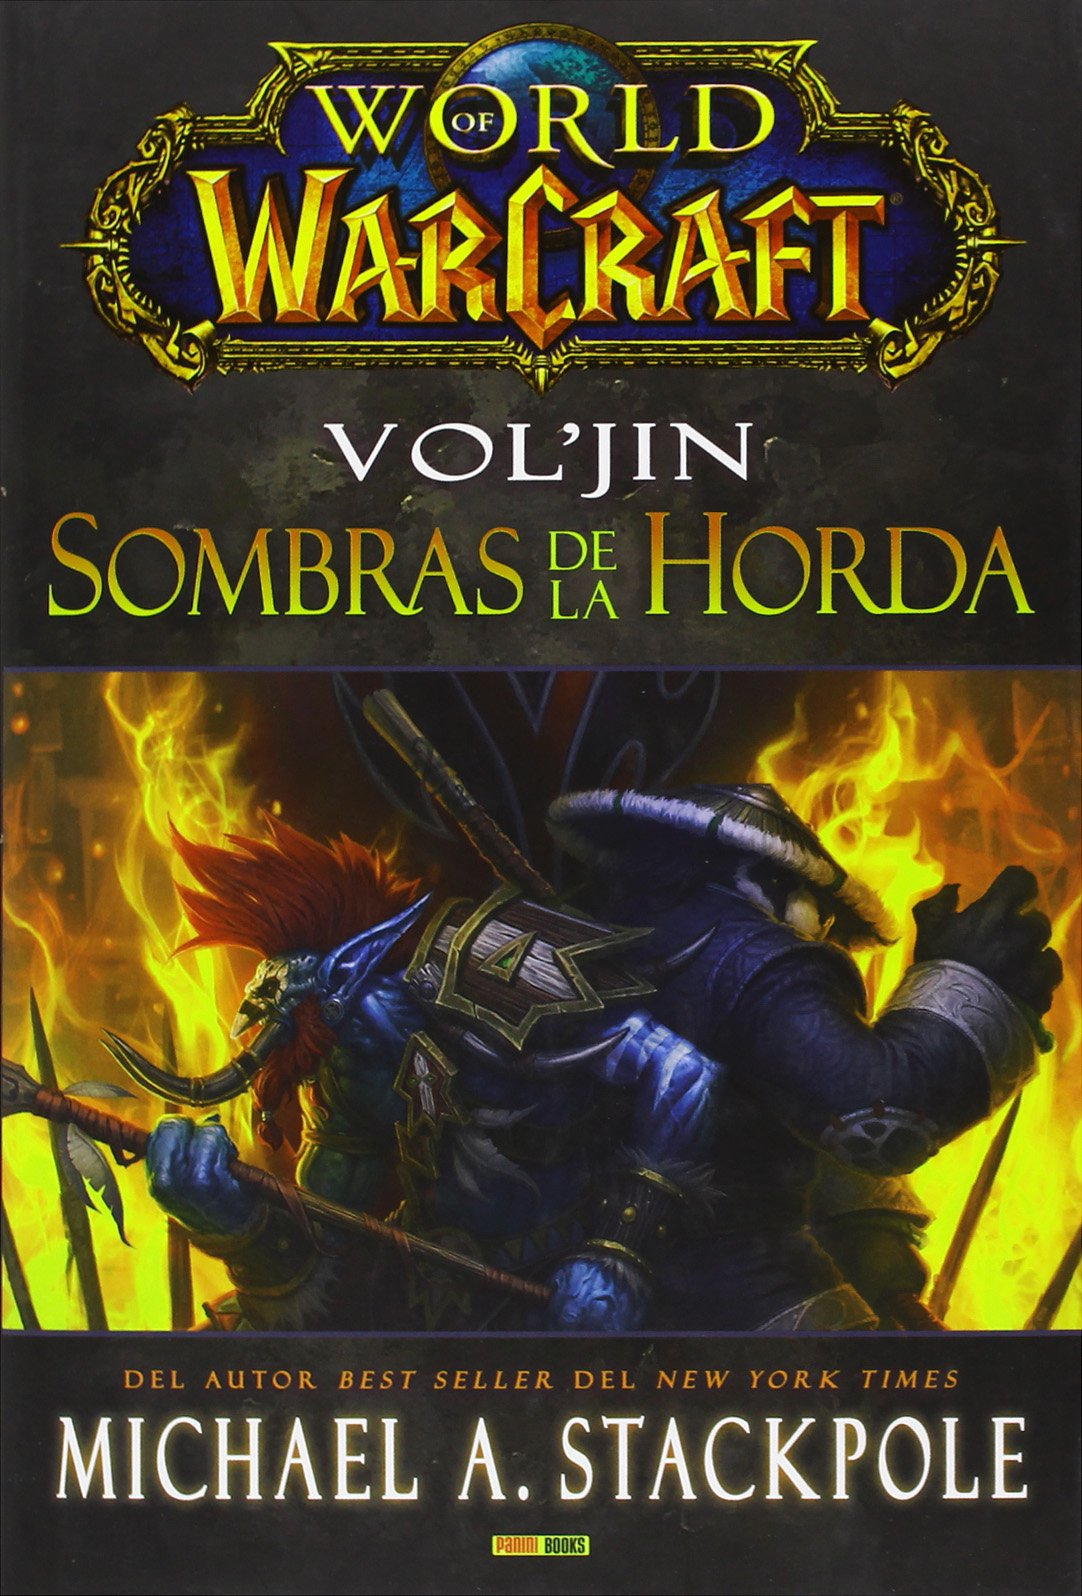 libros lore warcraft